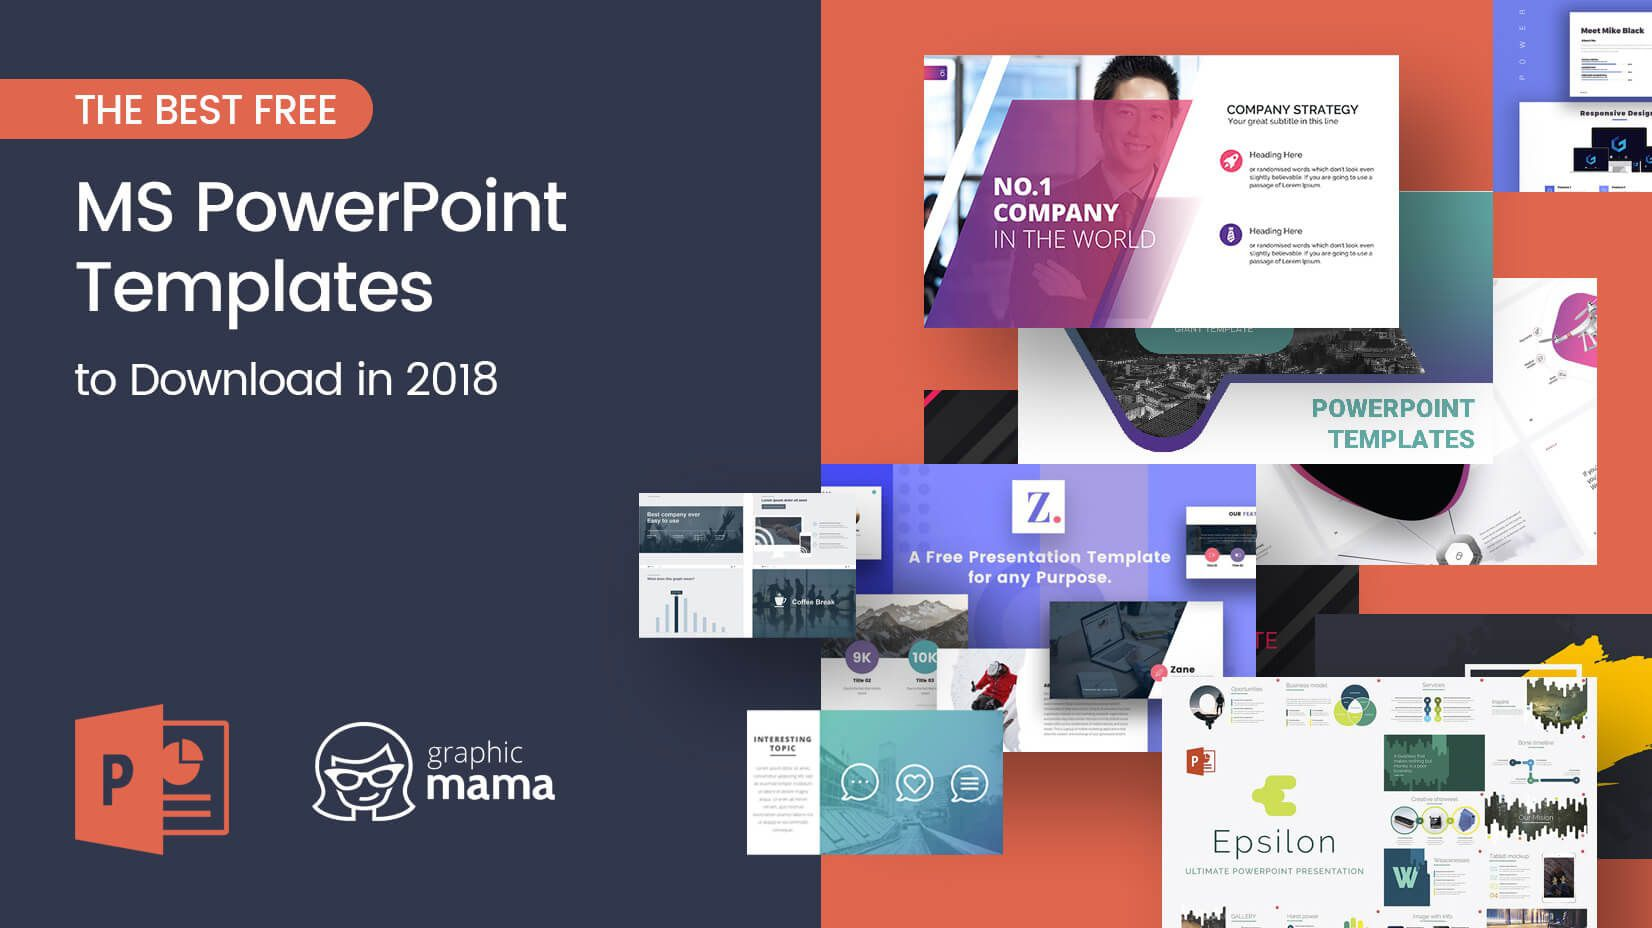 008 Outstanding Free Downloadable Ppt Template Idea  Templates For College Project Presentation Download Animated MedicalFull